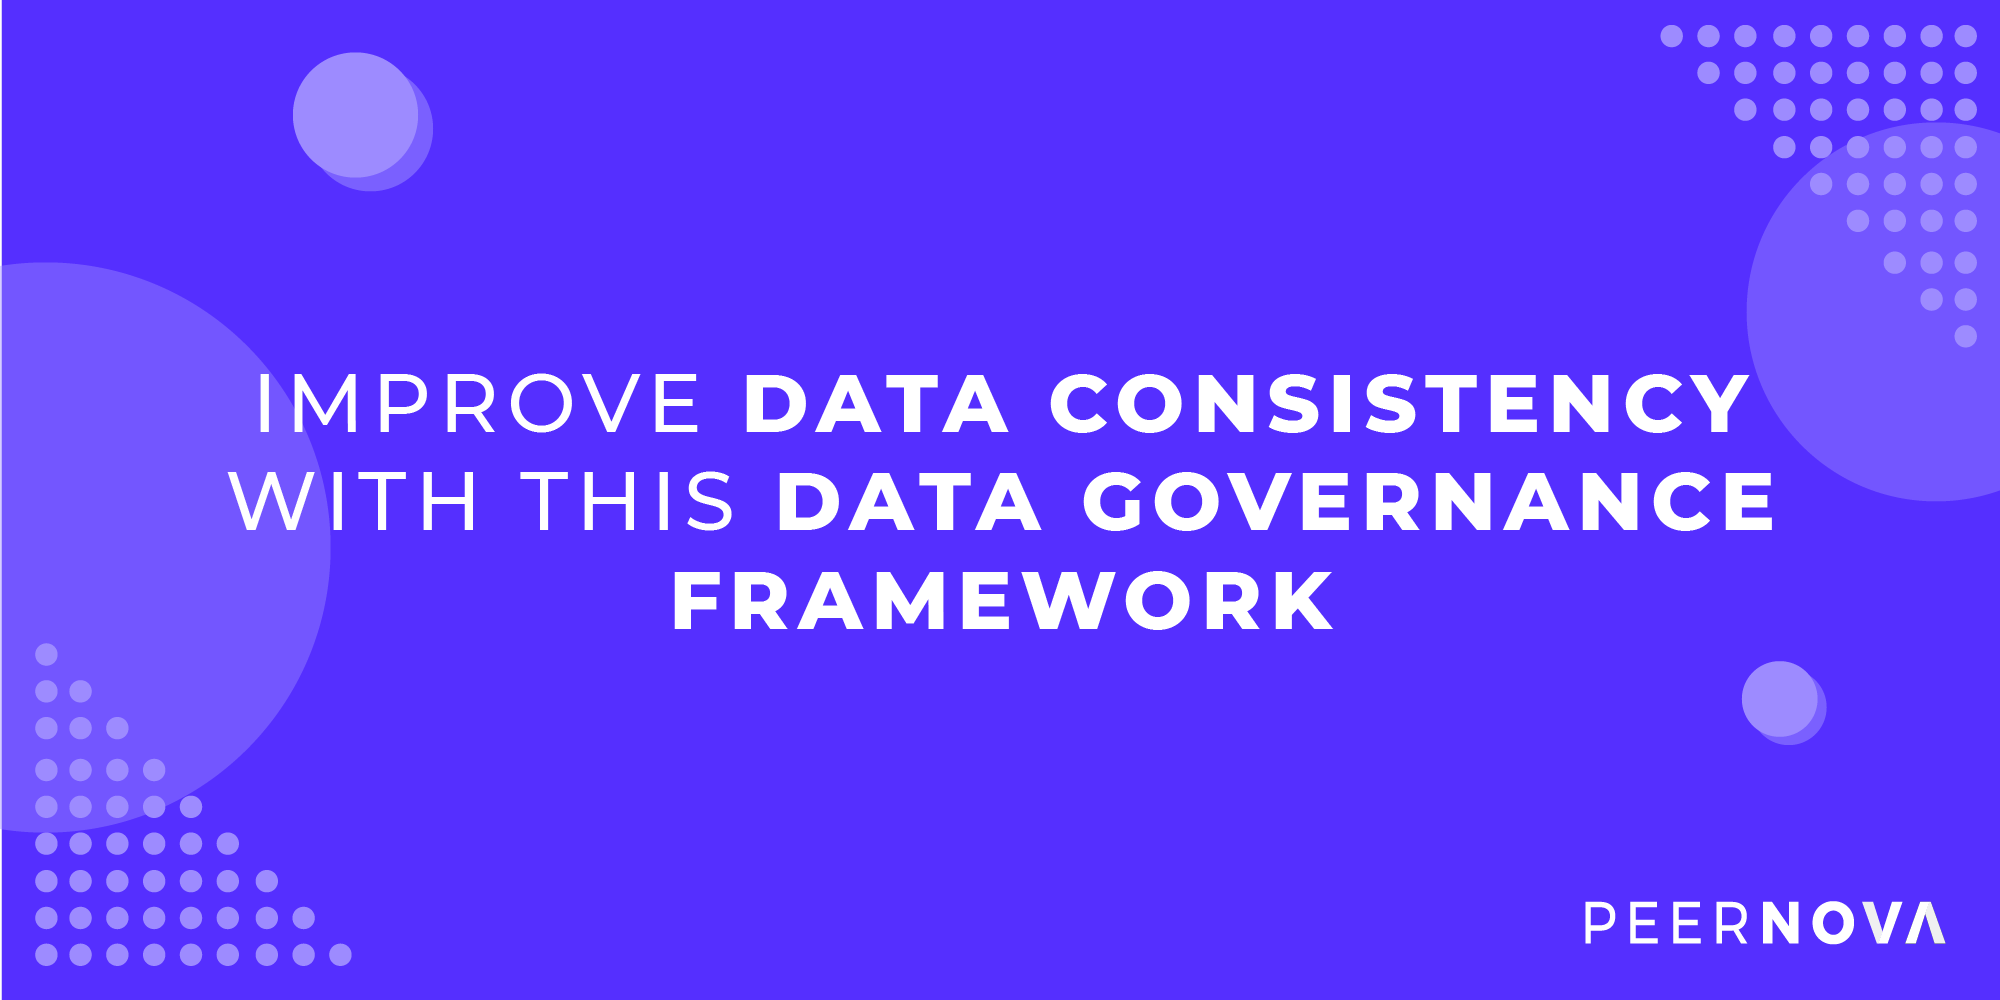 Effective Data Governance Leads to Better Data Consistency